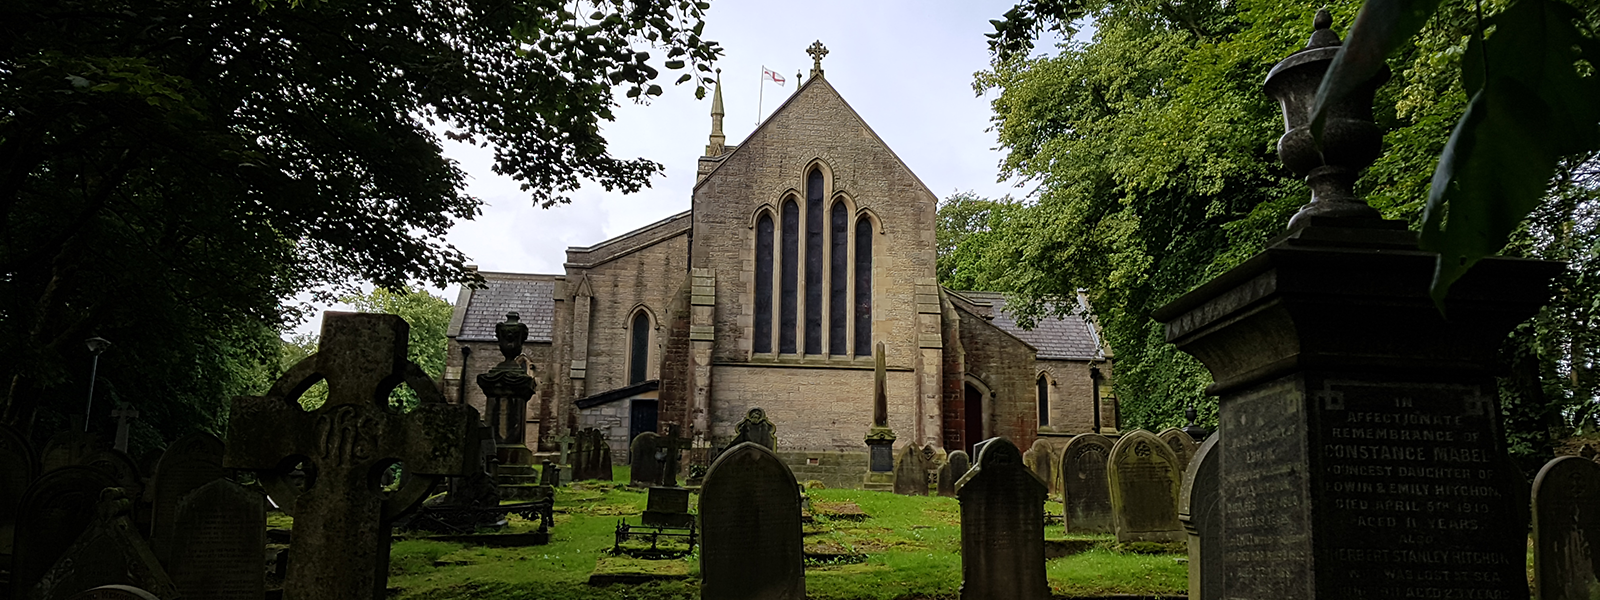 Christ Church as viewed from the east